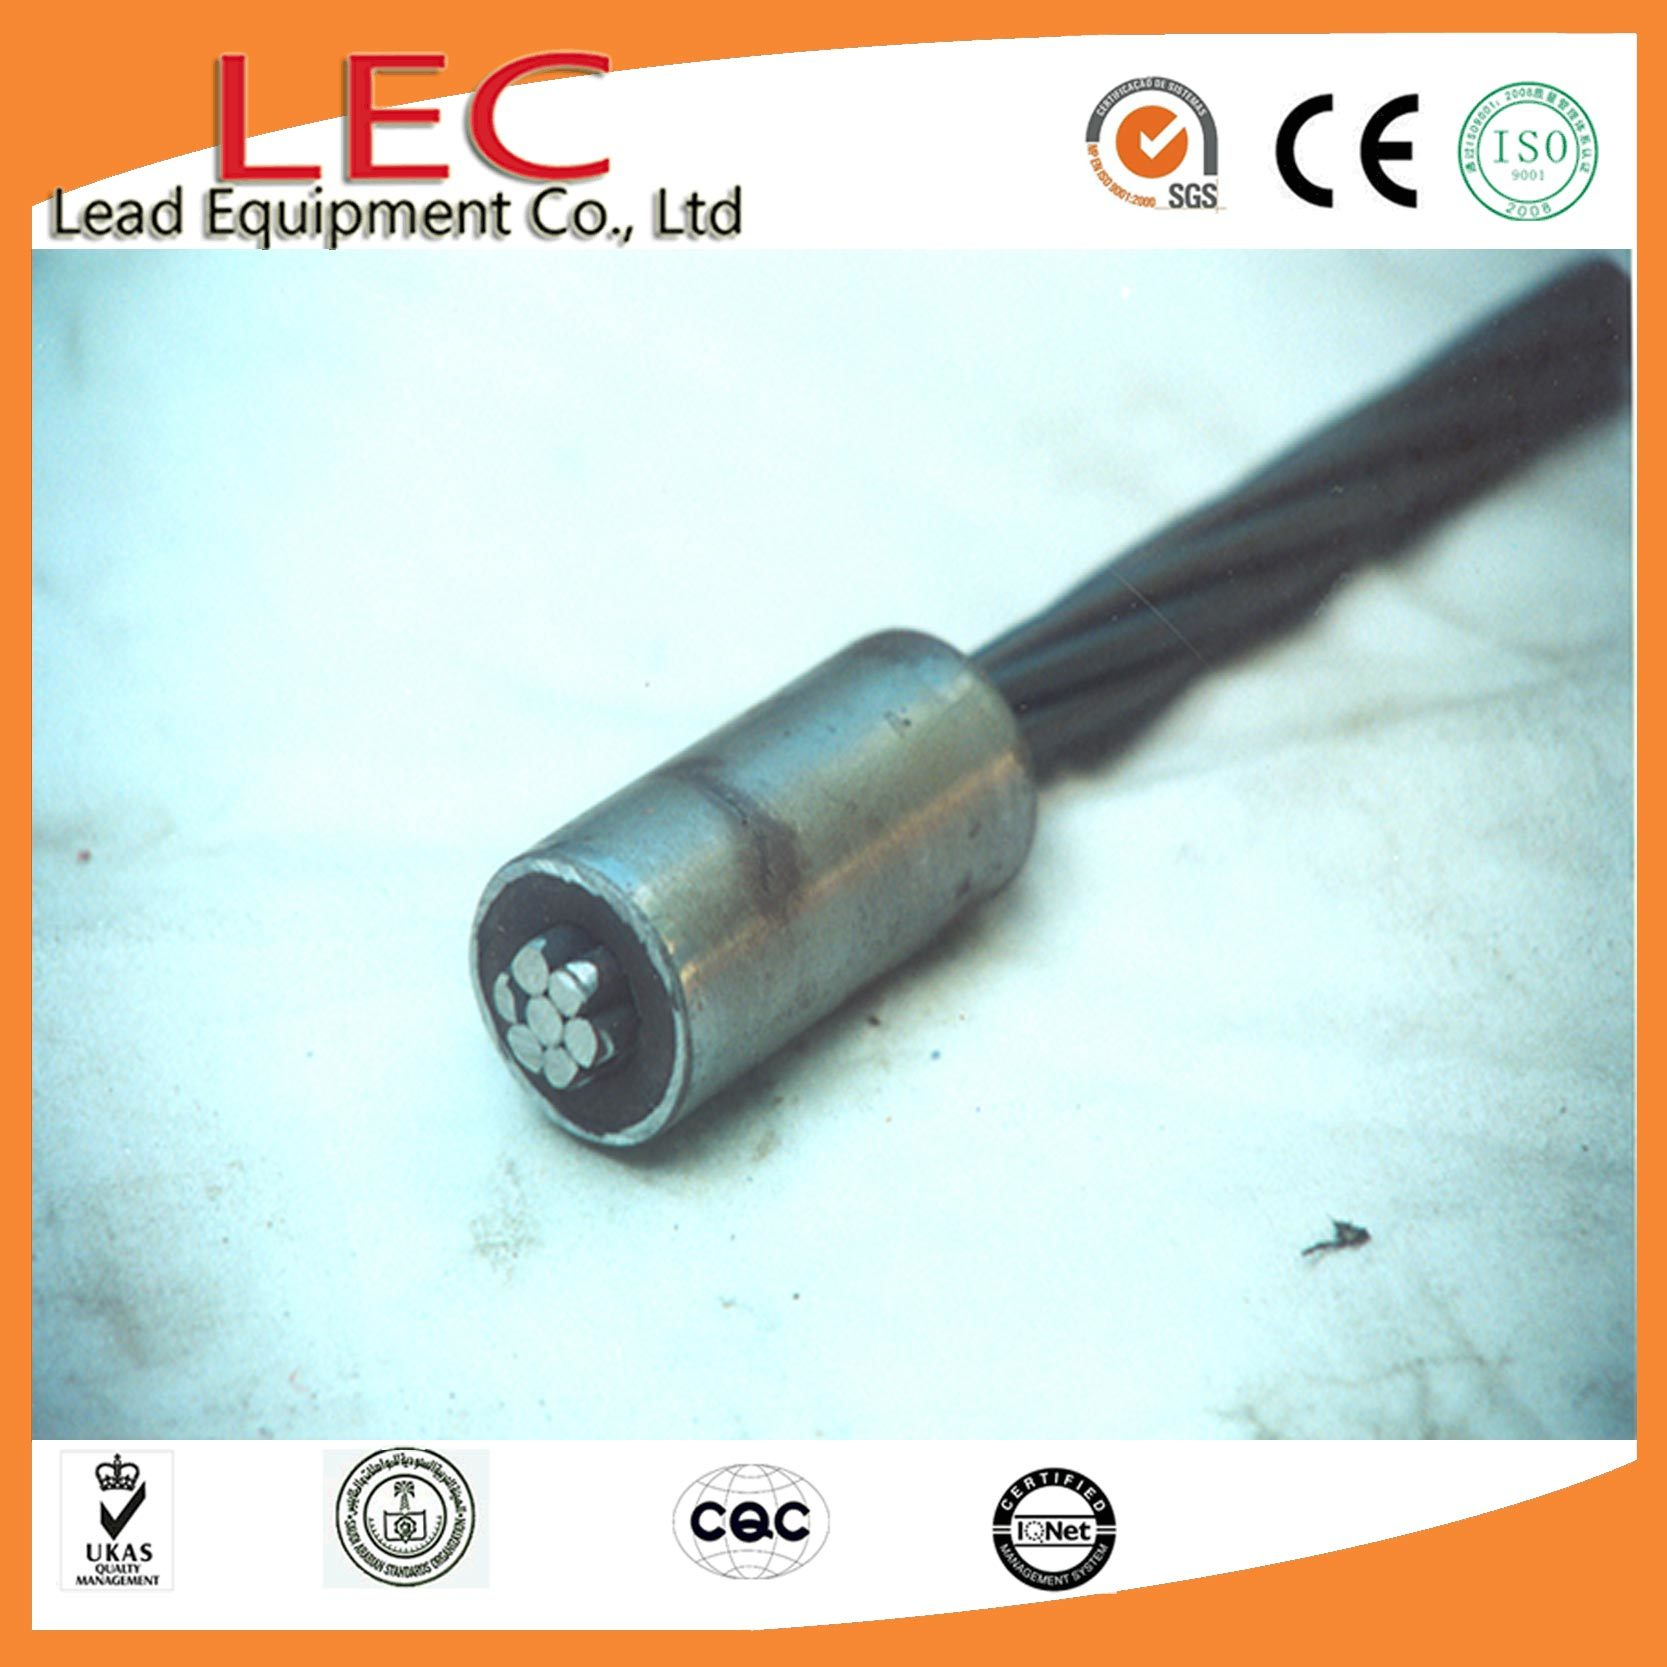 Post Tension Wedge Plate : China post tension anchor barrel and wedge photos